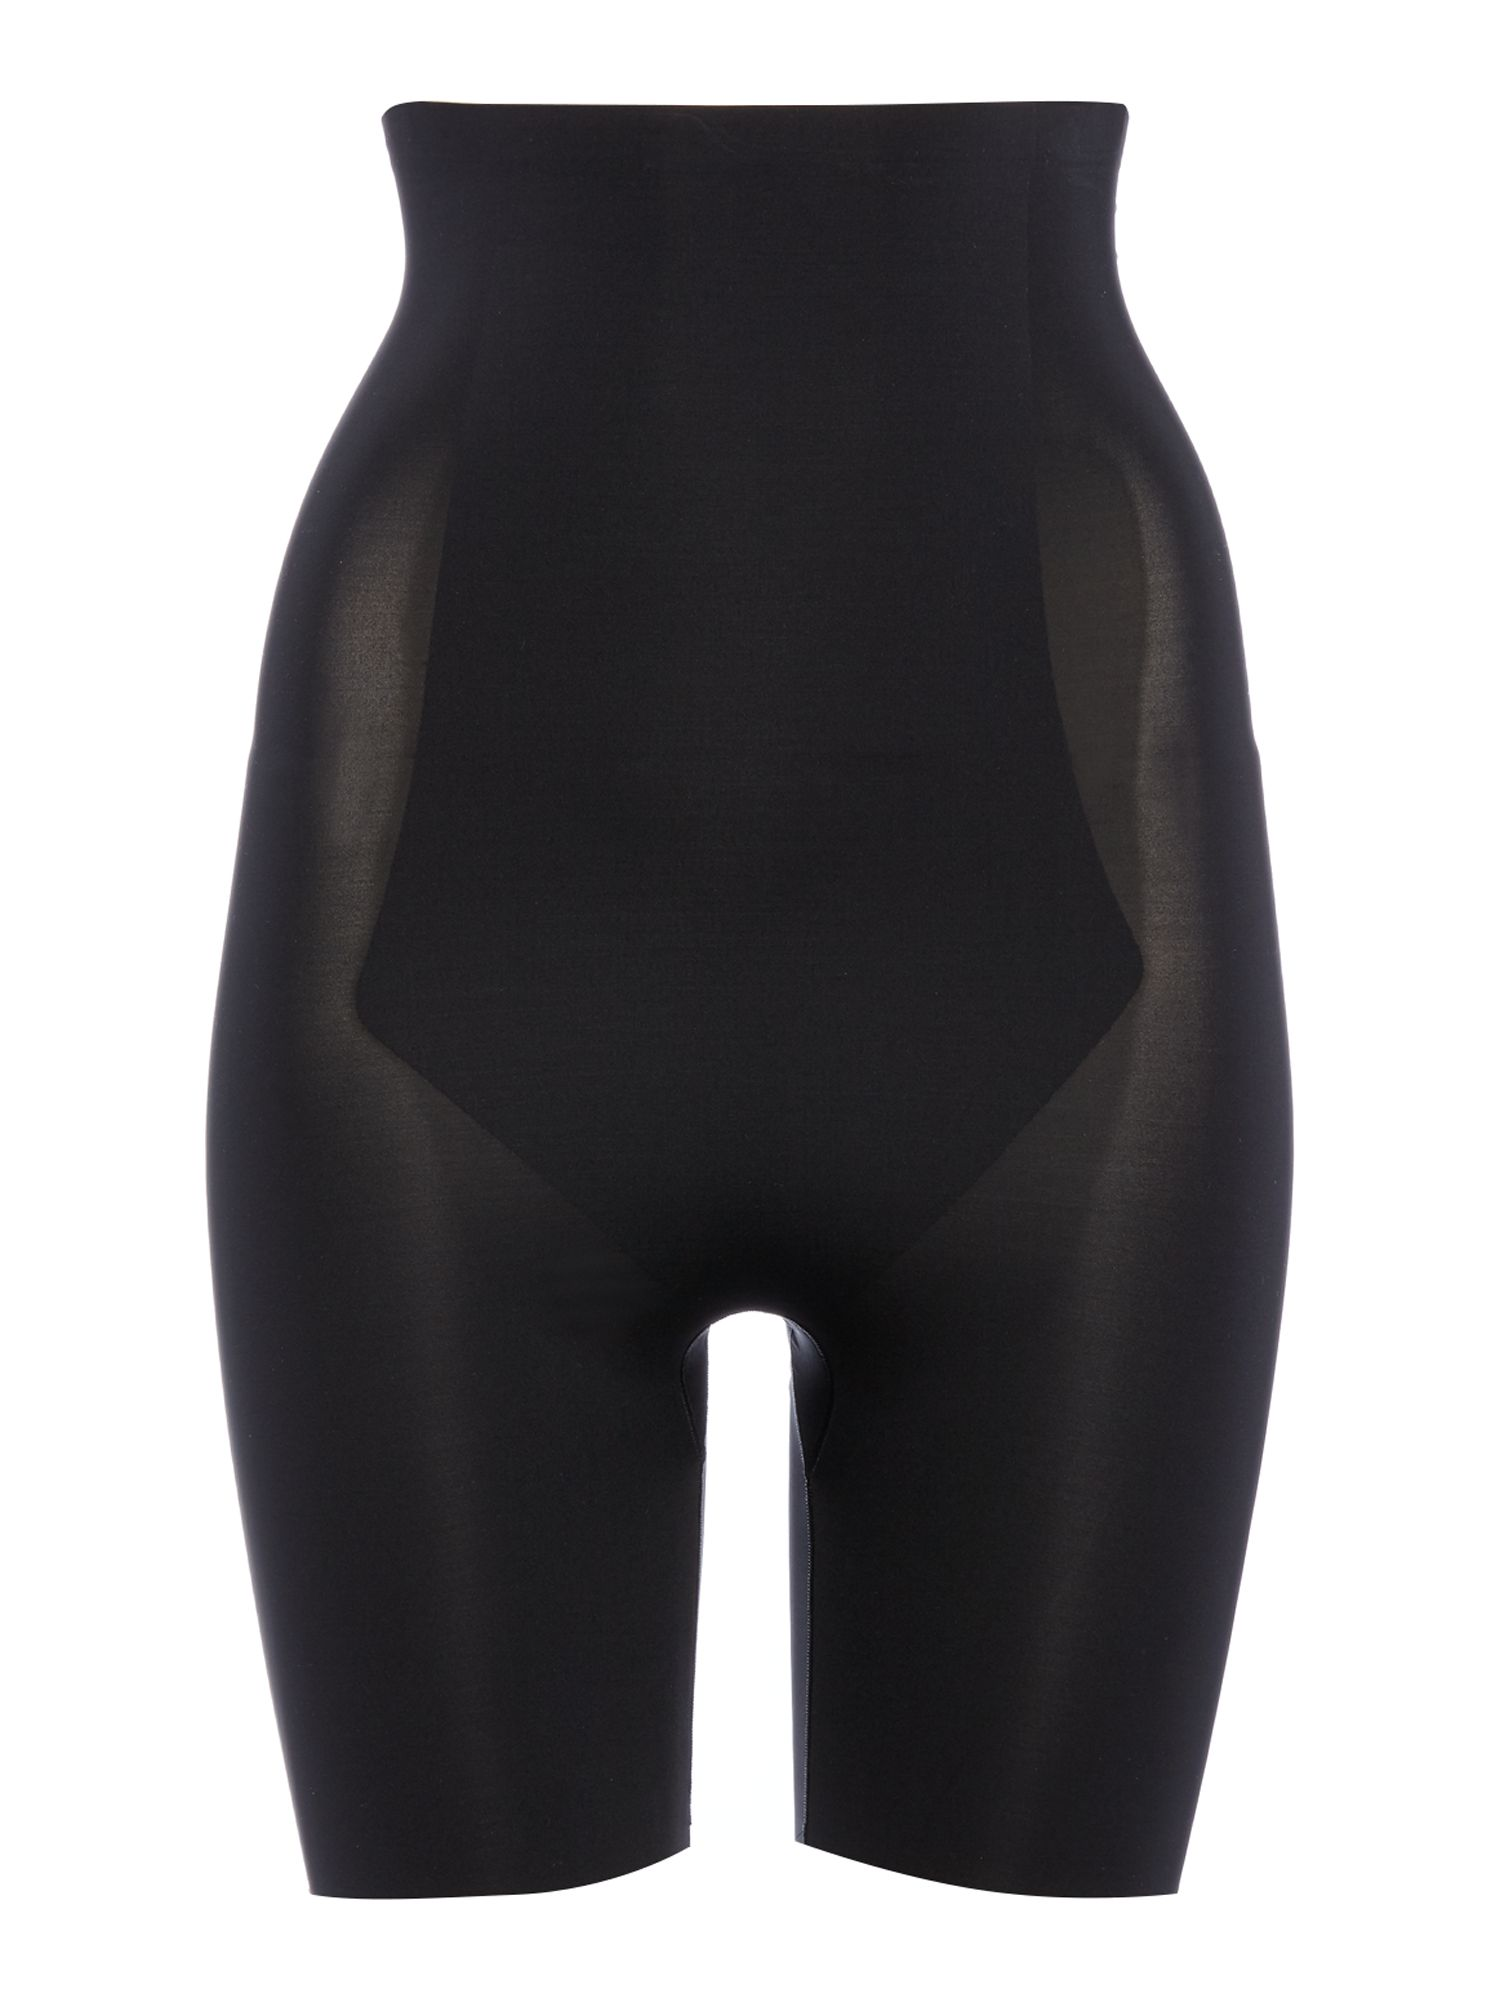 Spanx Spanx Power series higher power short, Black